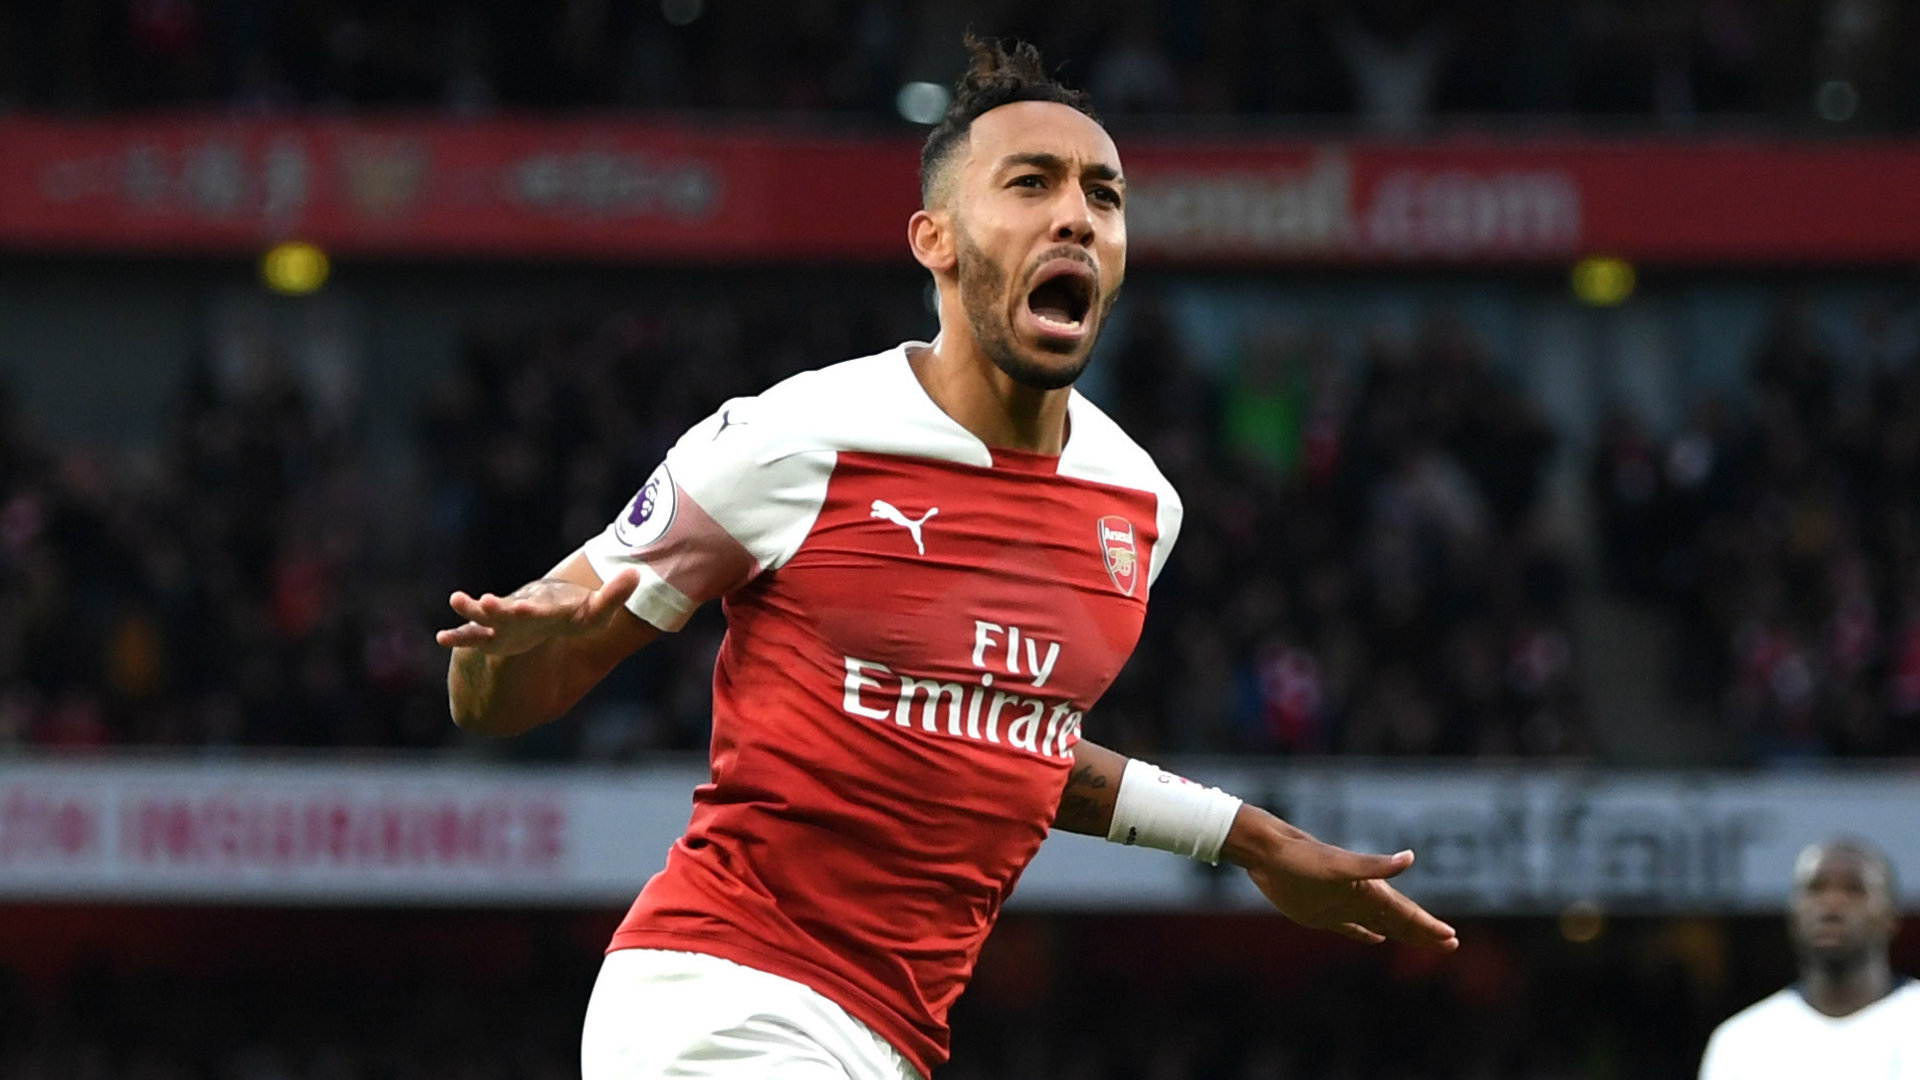 Pierre-Emerick Aubameyang Arsenal vs Tottenham 2018-19